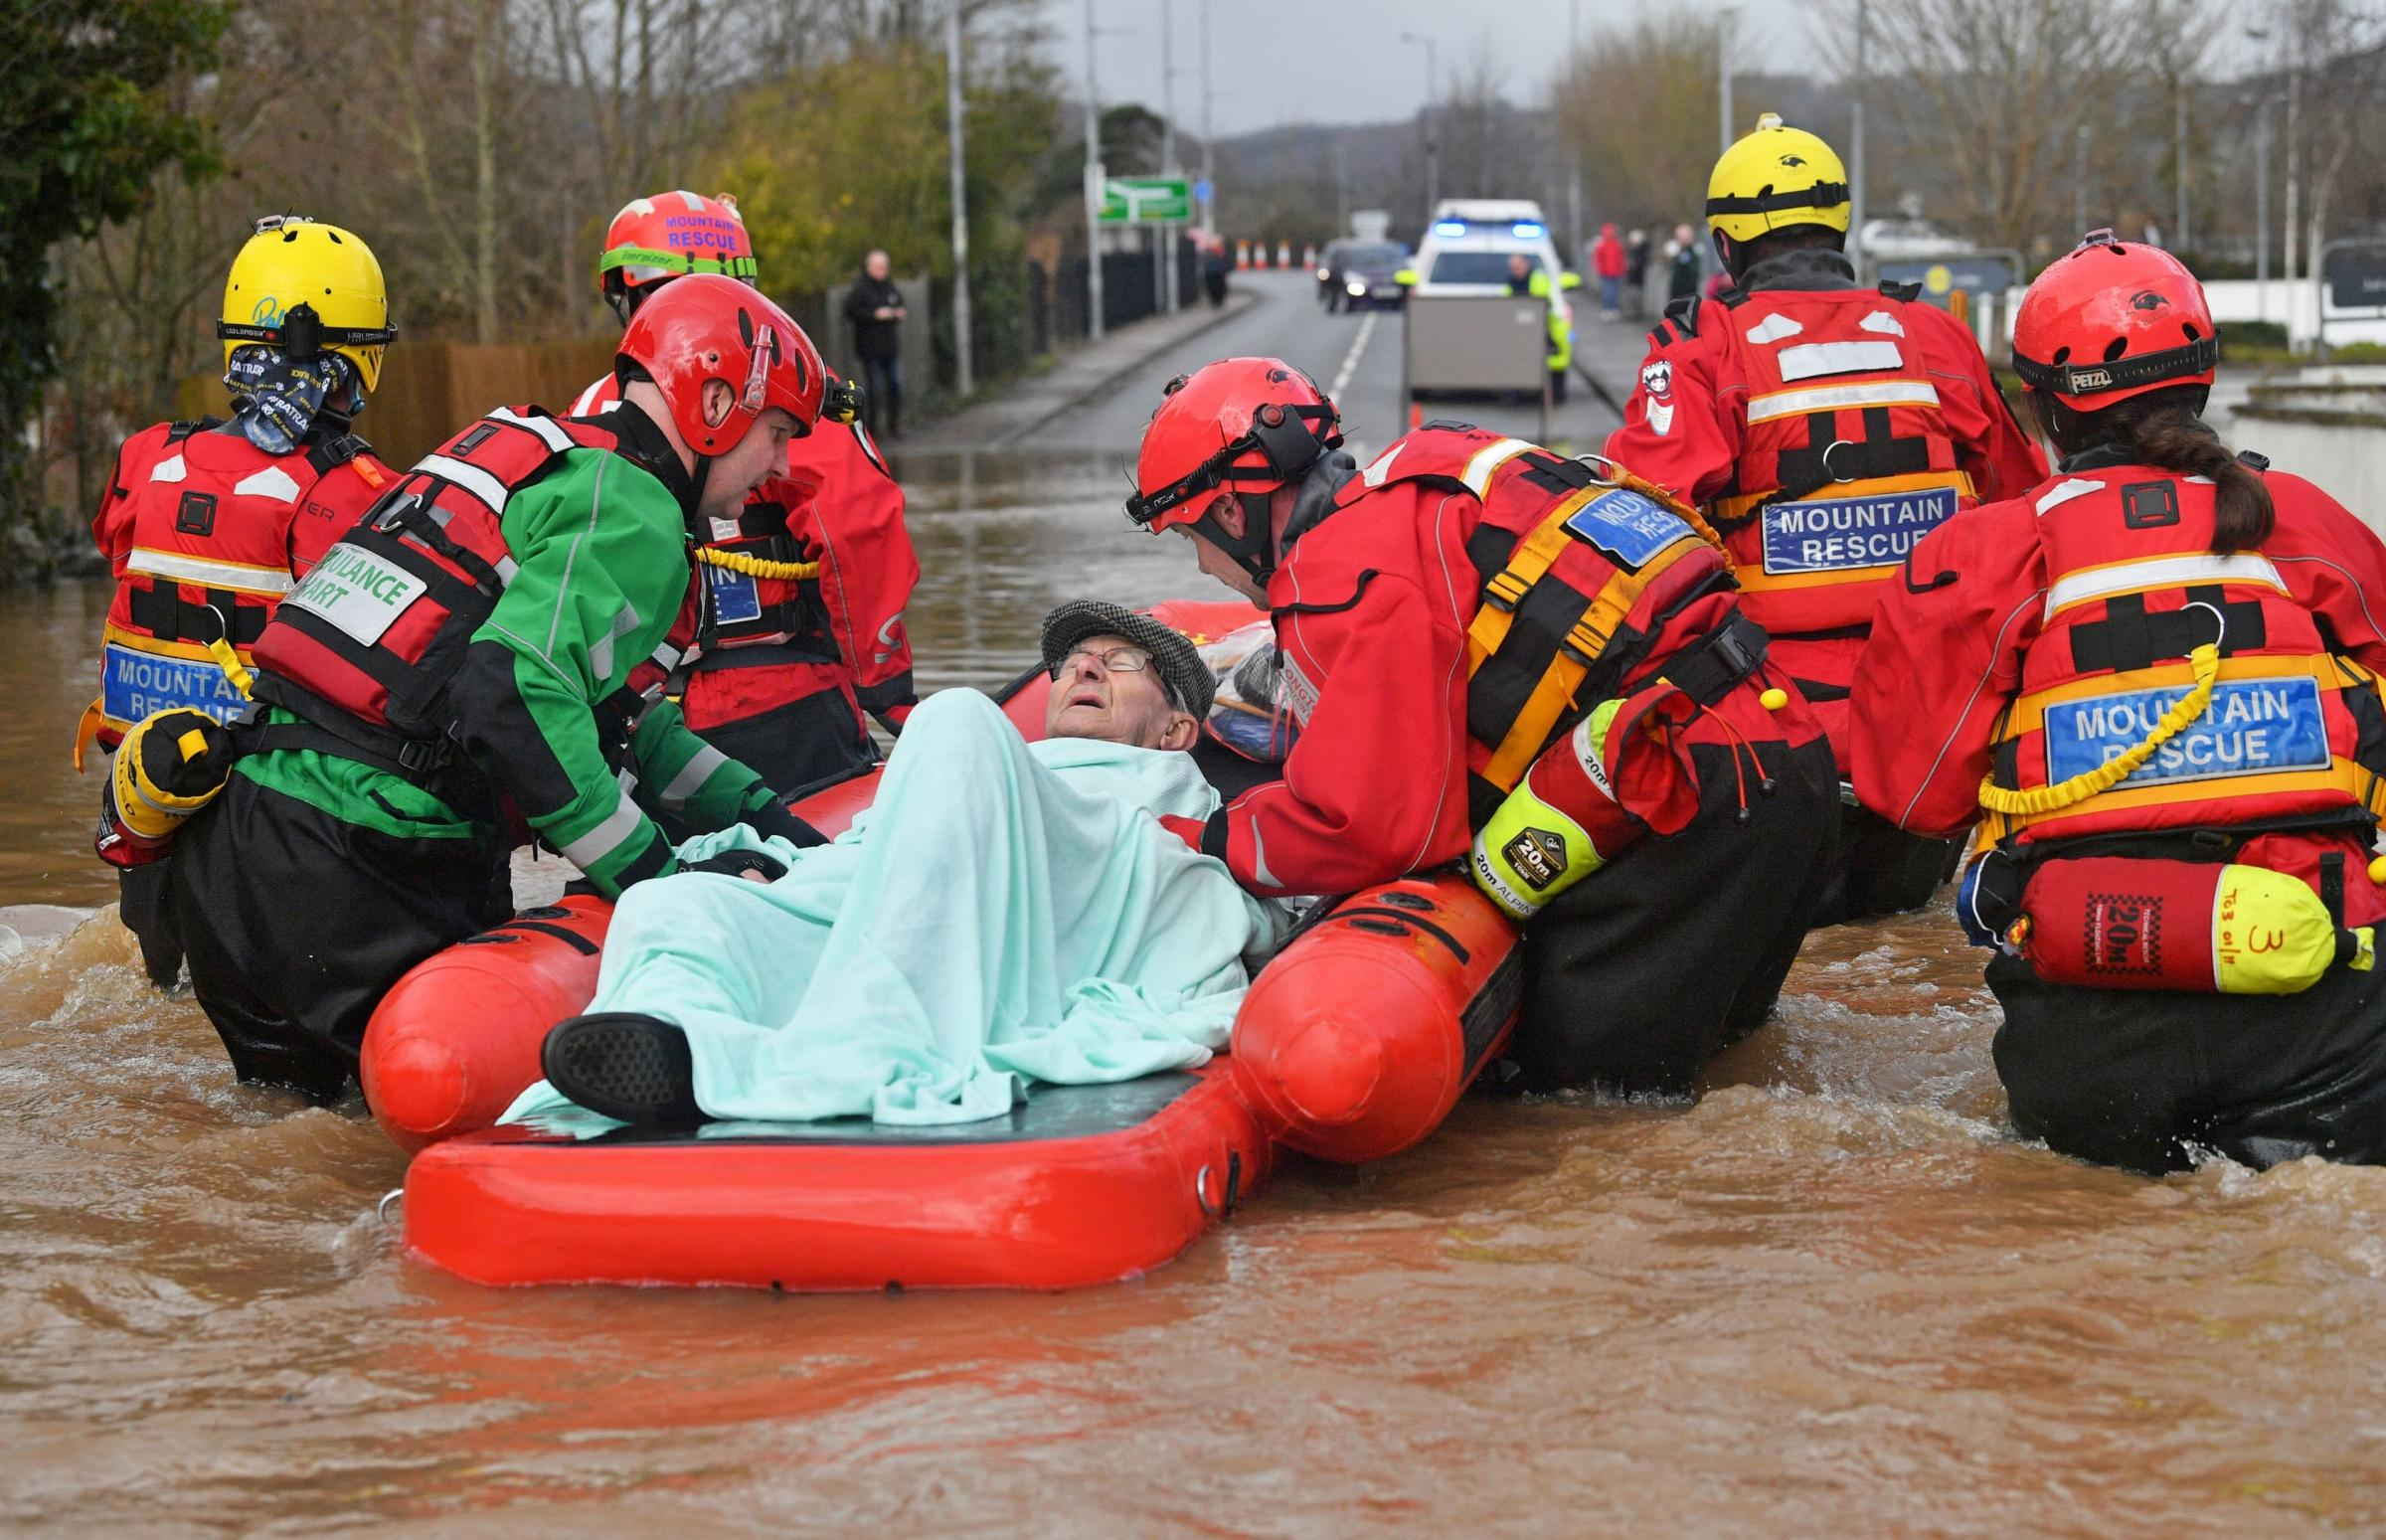 Elderly man rescued by Mountain Rescue teams from his flooded home in Monmouth